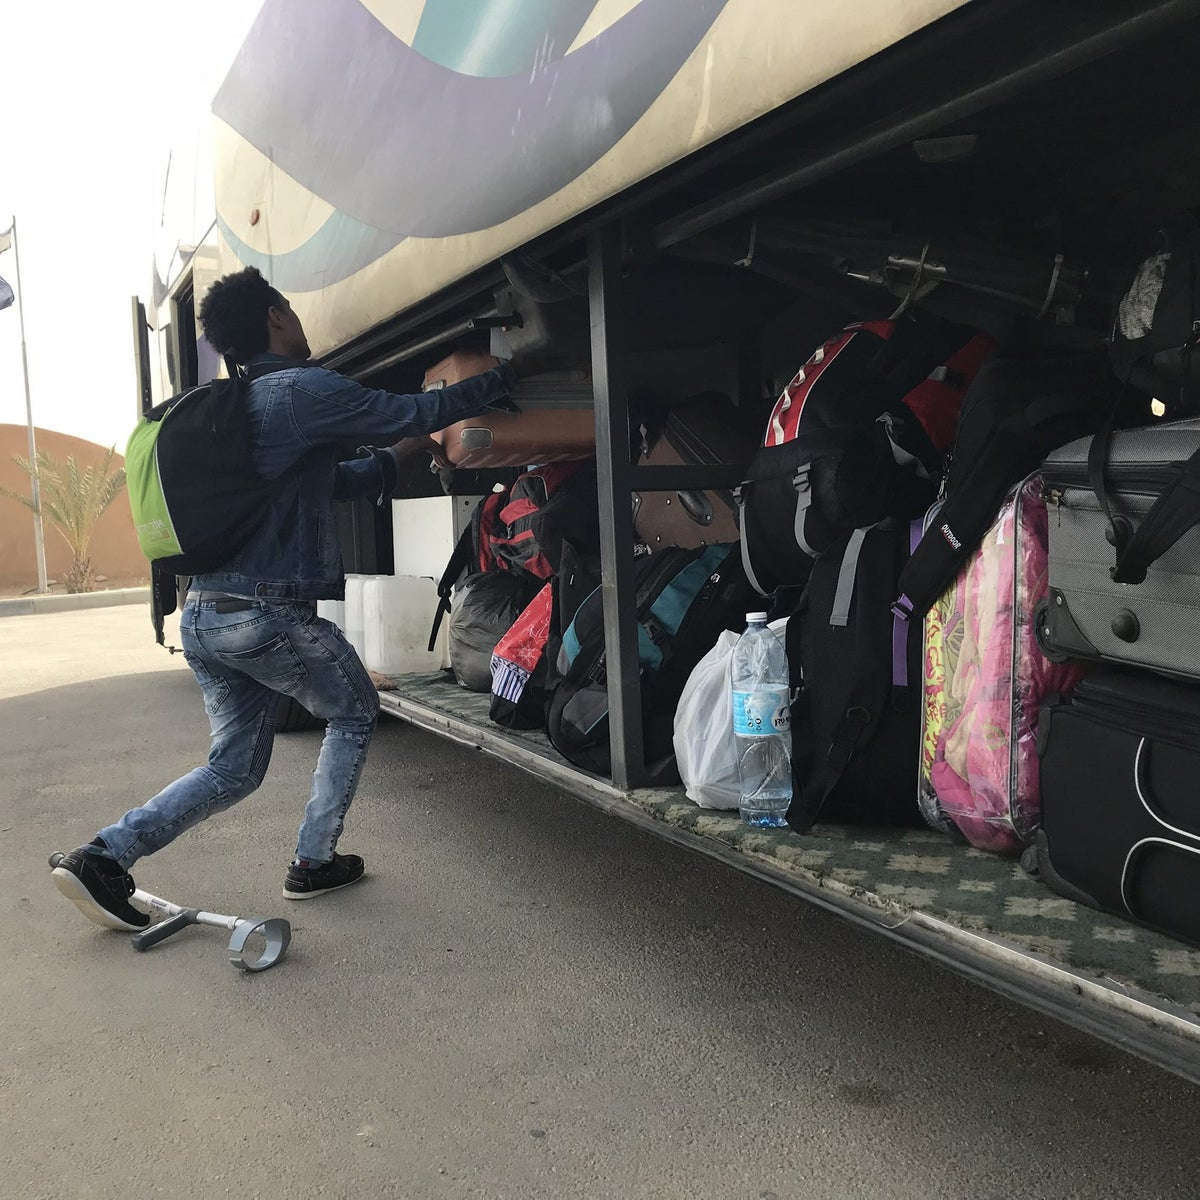 Asylum seeker board a bus to leave Holot detention facility in Israel's Negev desert, March 6, 2018.